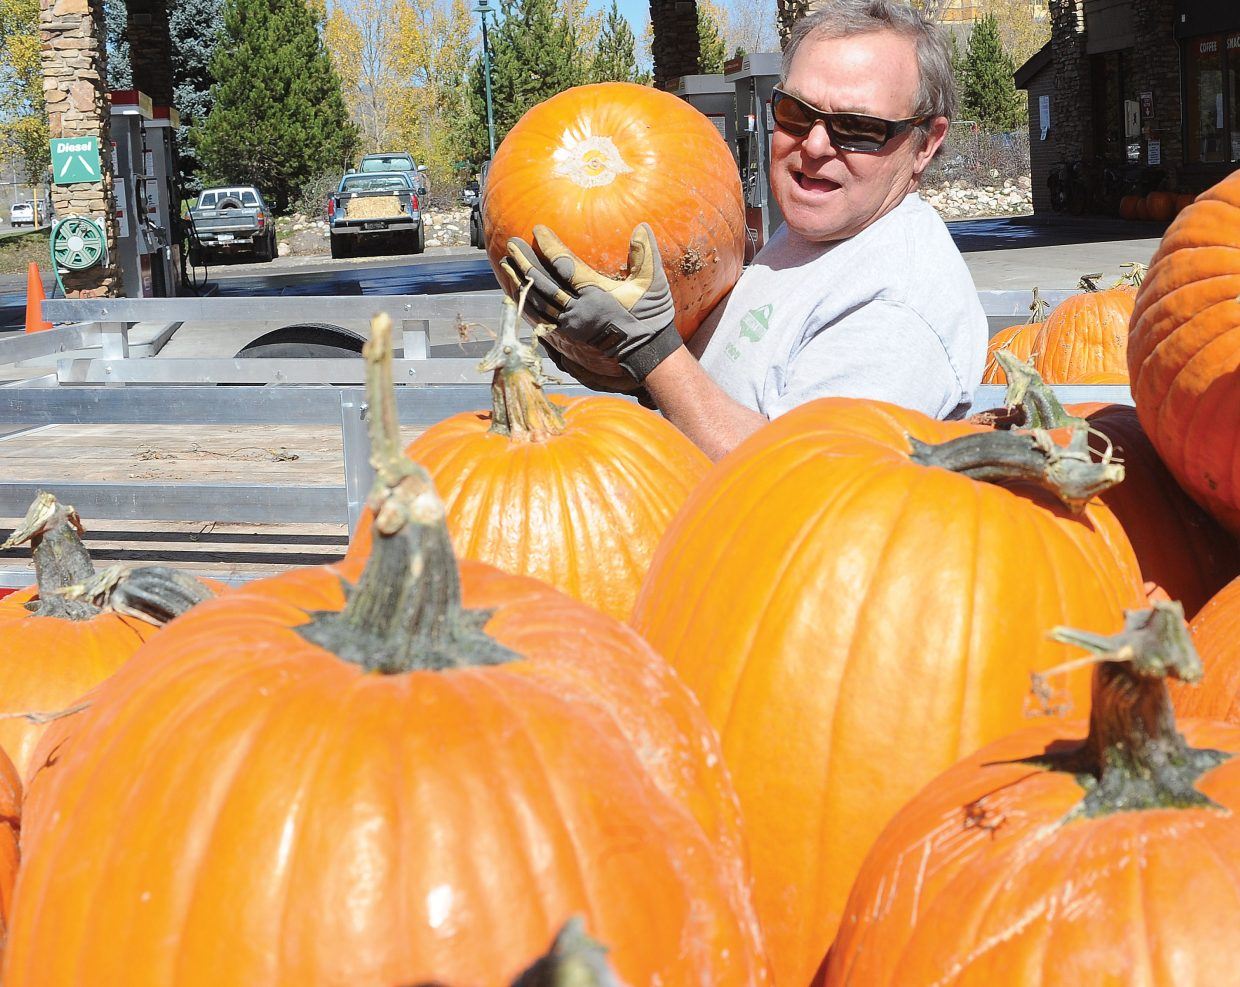 Ski Haus owner Rob Schrage unloads pumpkins outside the Steamboat Springs store. Each year, Schrage buys the pumpkins from the same family in Delta and brings them to Steamboat Springs, where they are on display in the bed of his vintage Diamond T.